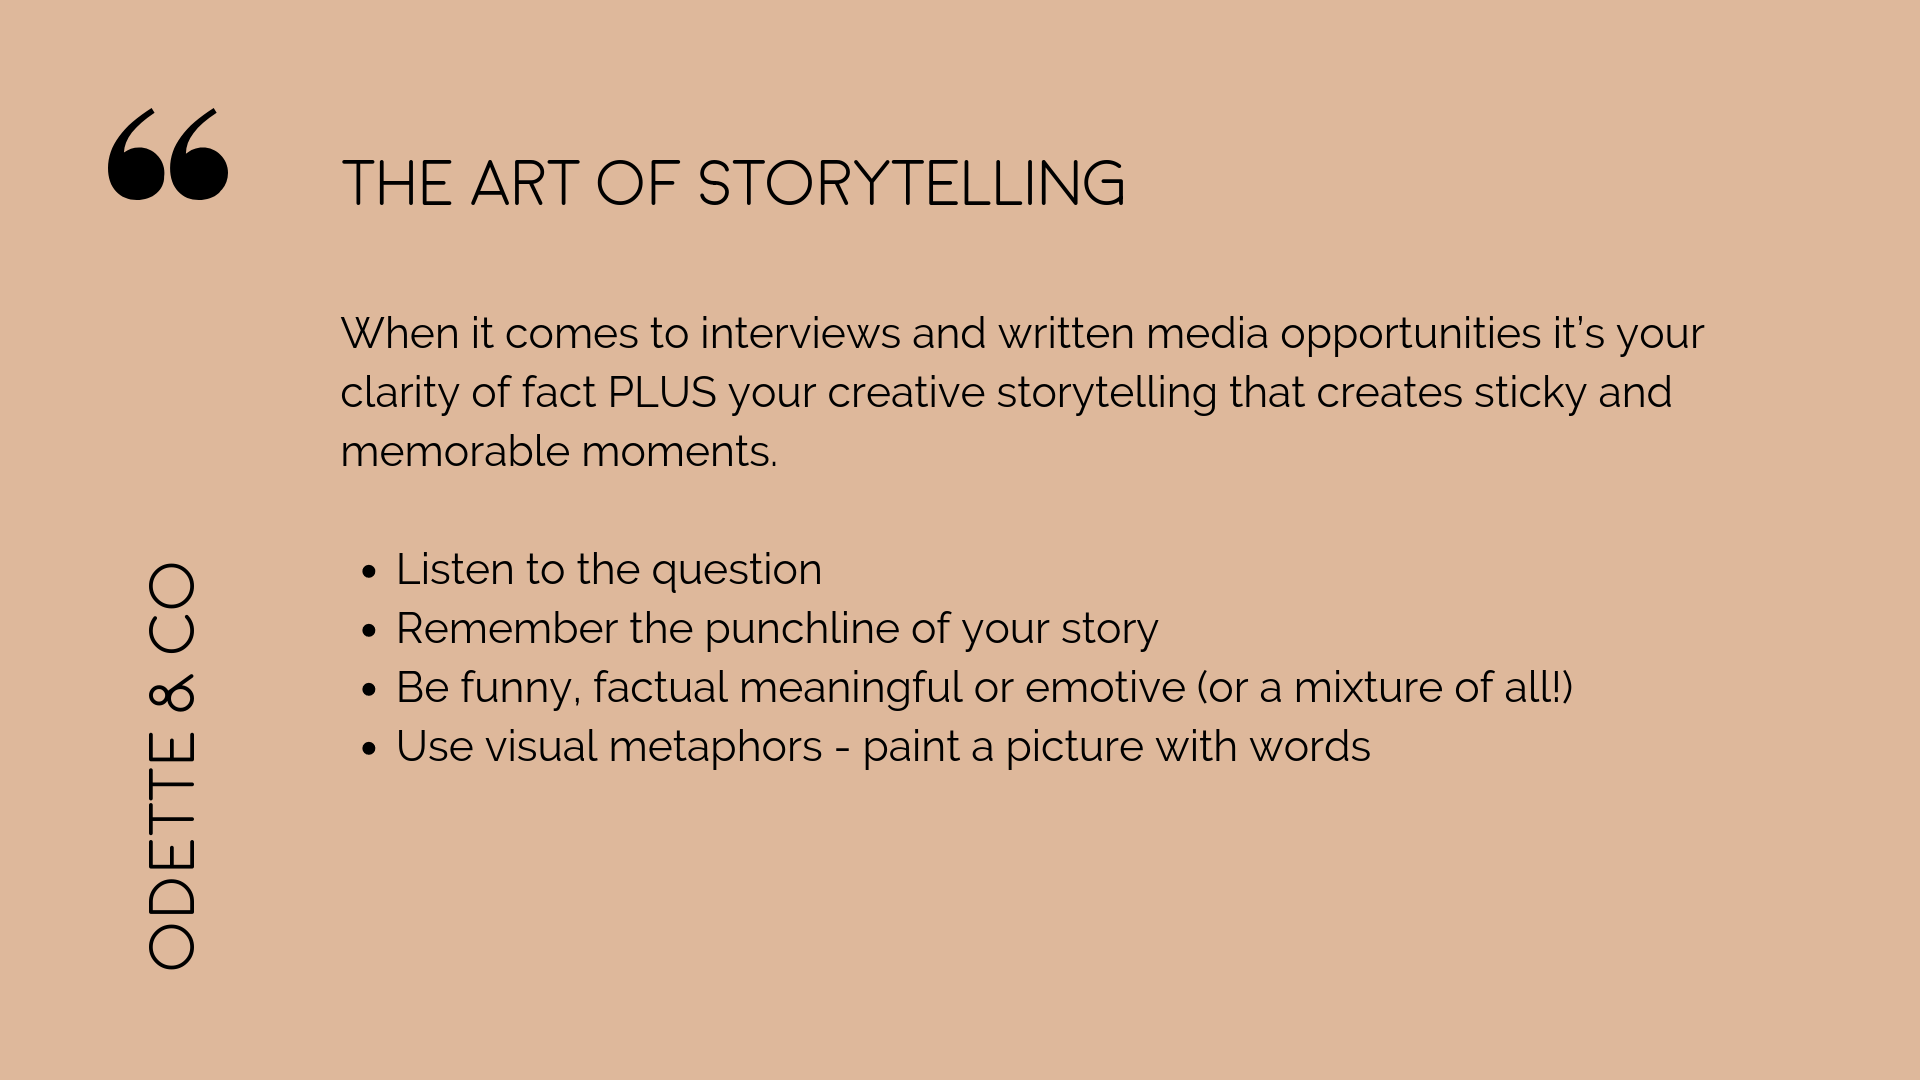 How to DIY your PR the art of storytelling